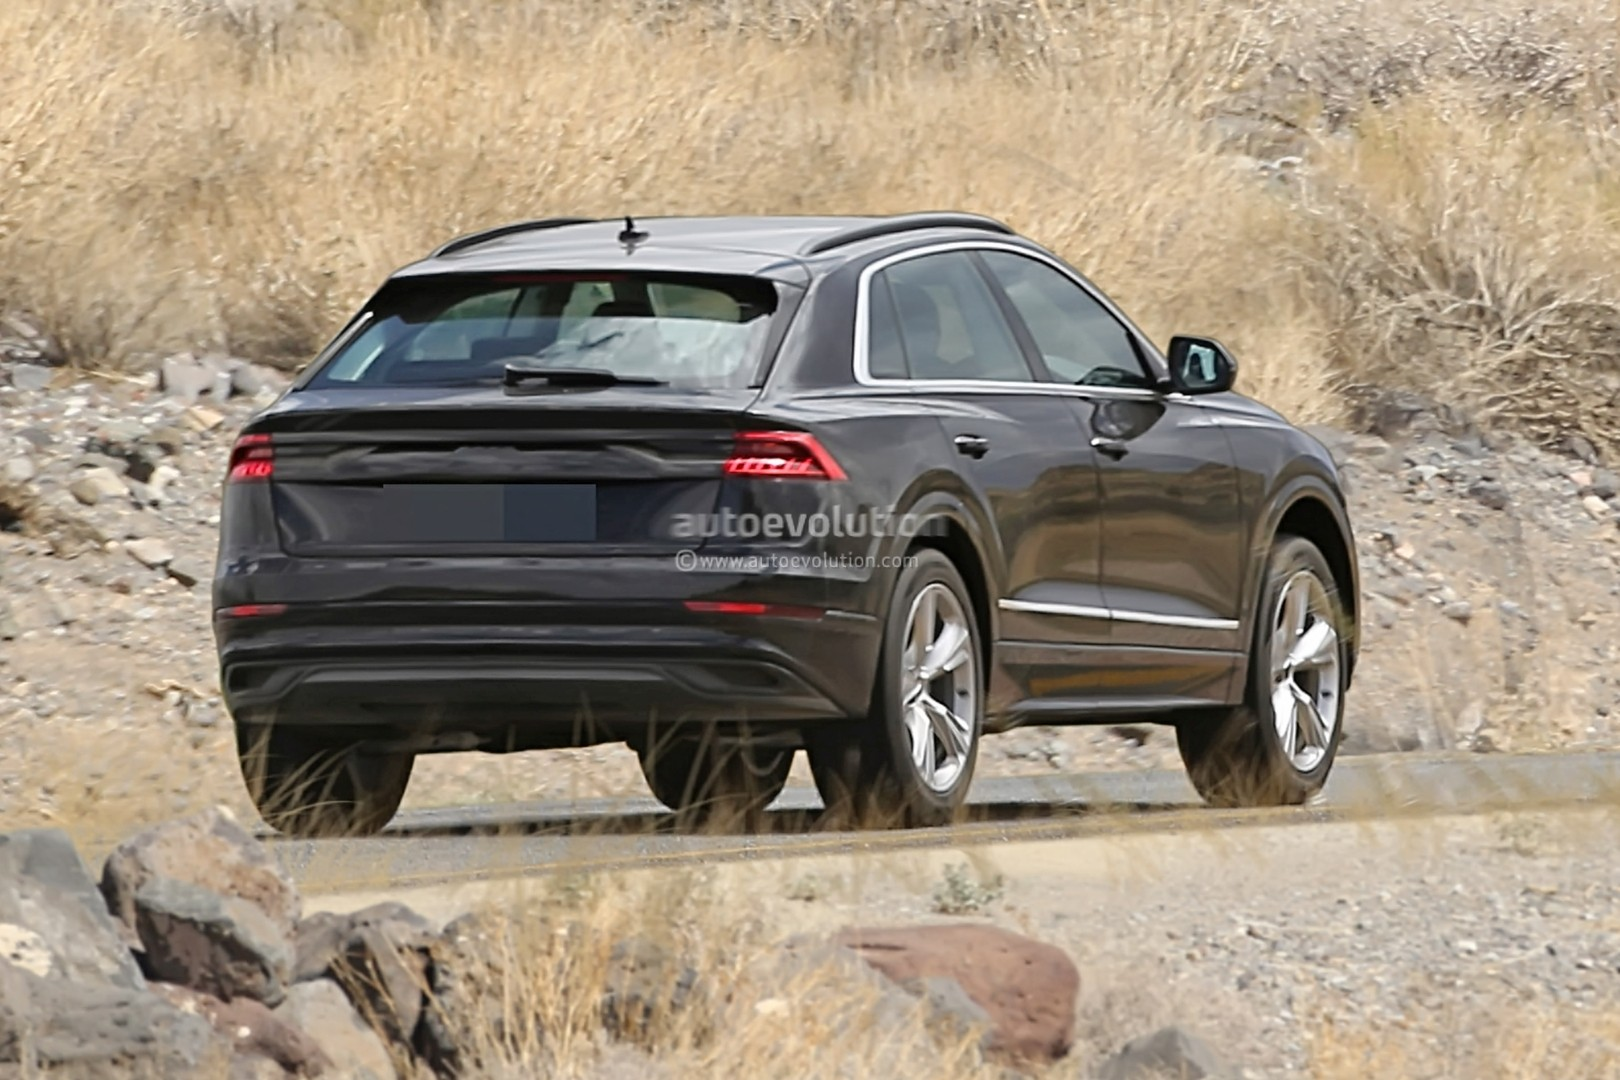 Different Suv Models >> Audi Q8 Halo SUV Model Confirmed: Q7 Platform and Prologue Concept Design - autoevolution